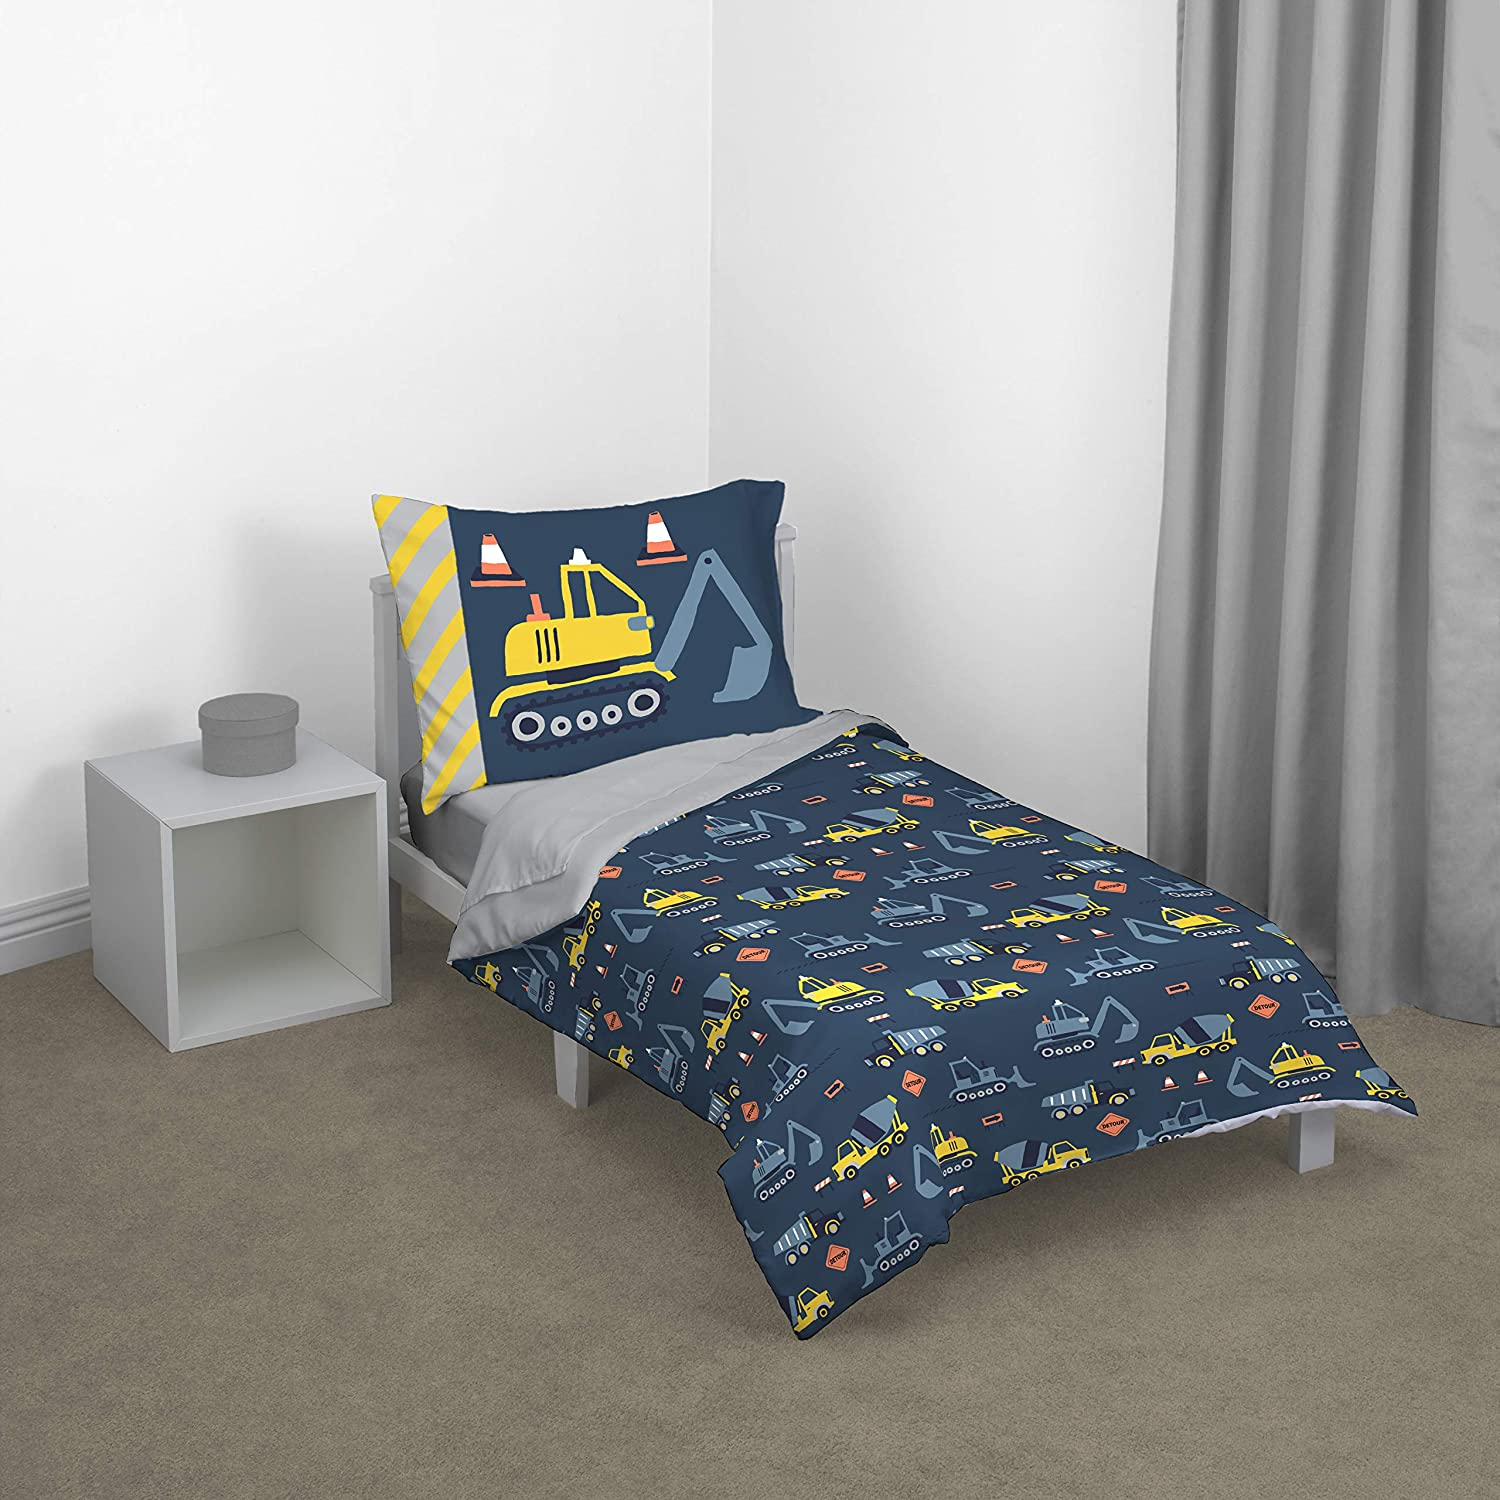 Carter'S Construction Time Toddler Bed Set, Navy, Yellow, Grey, Orange